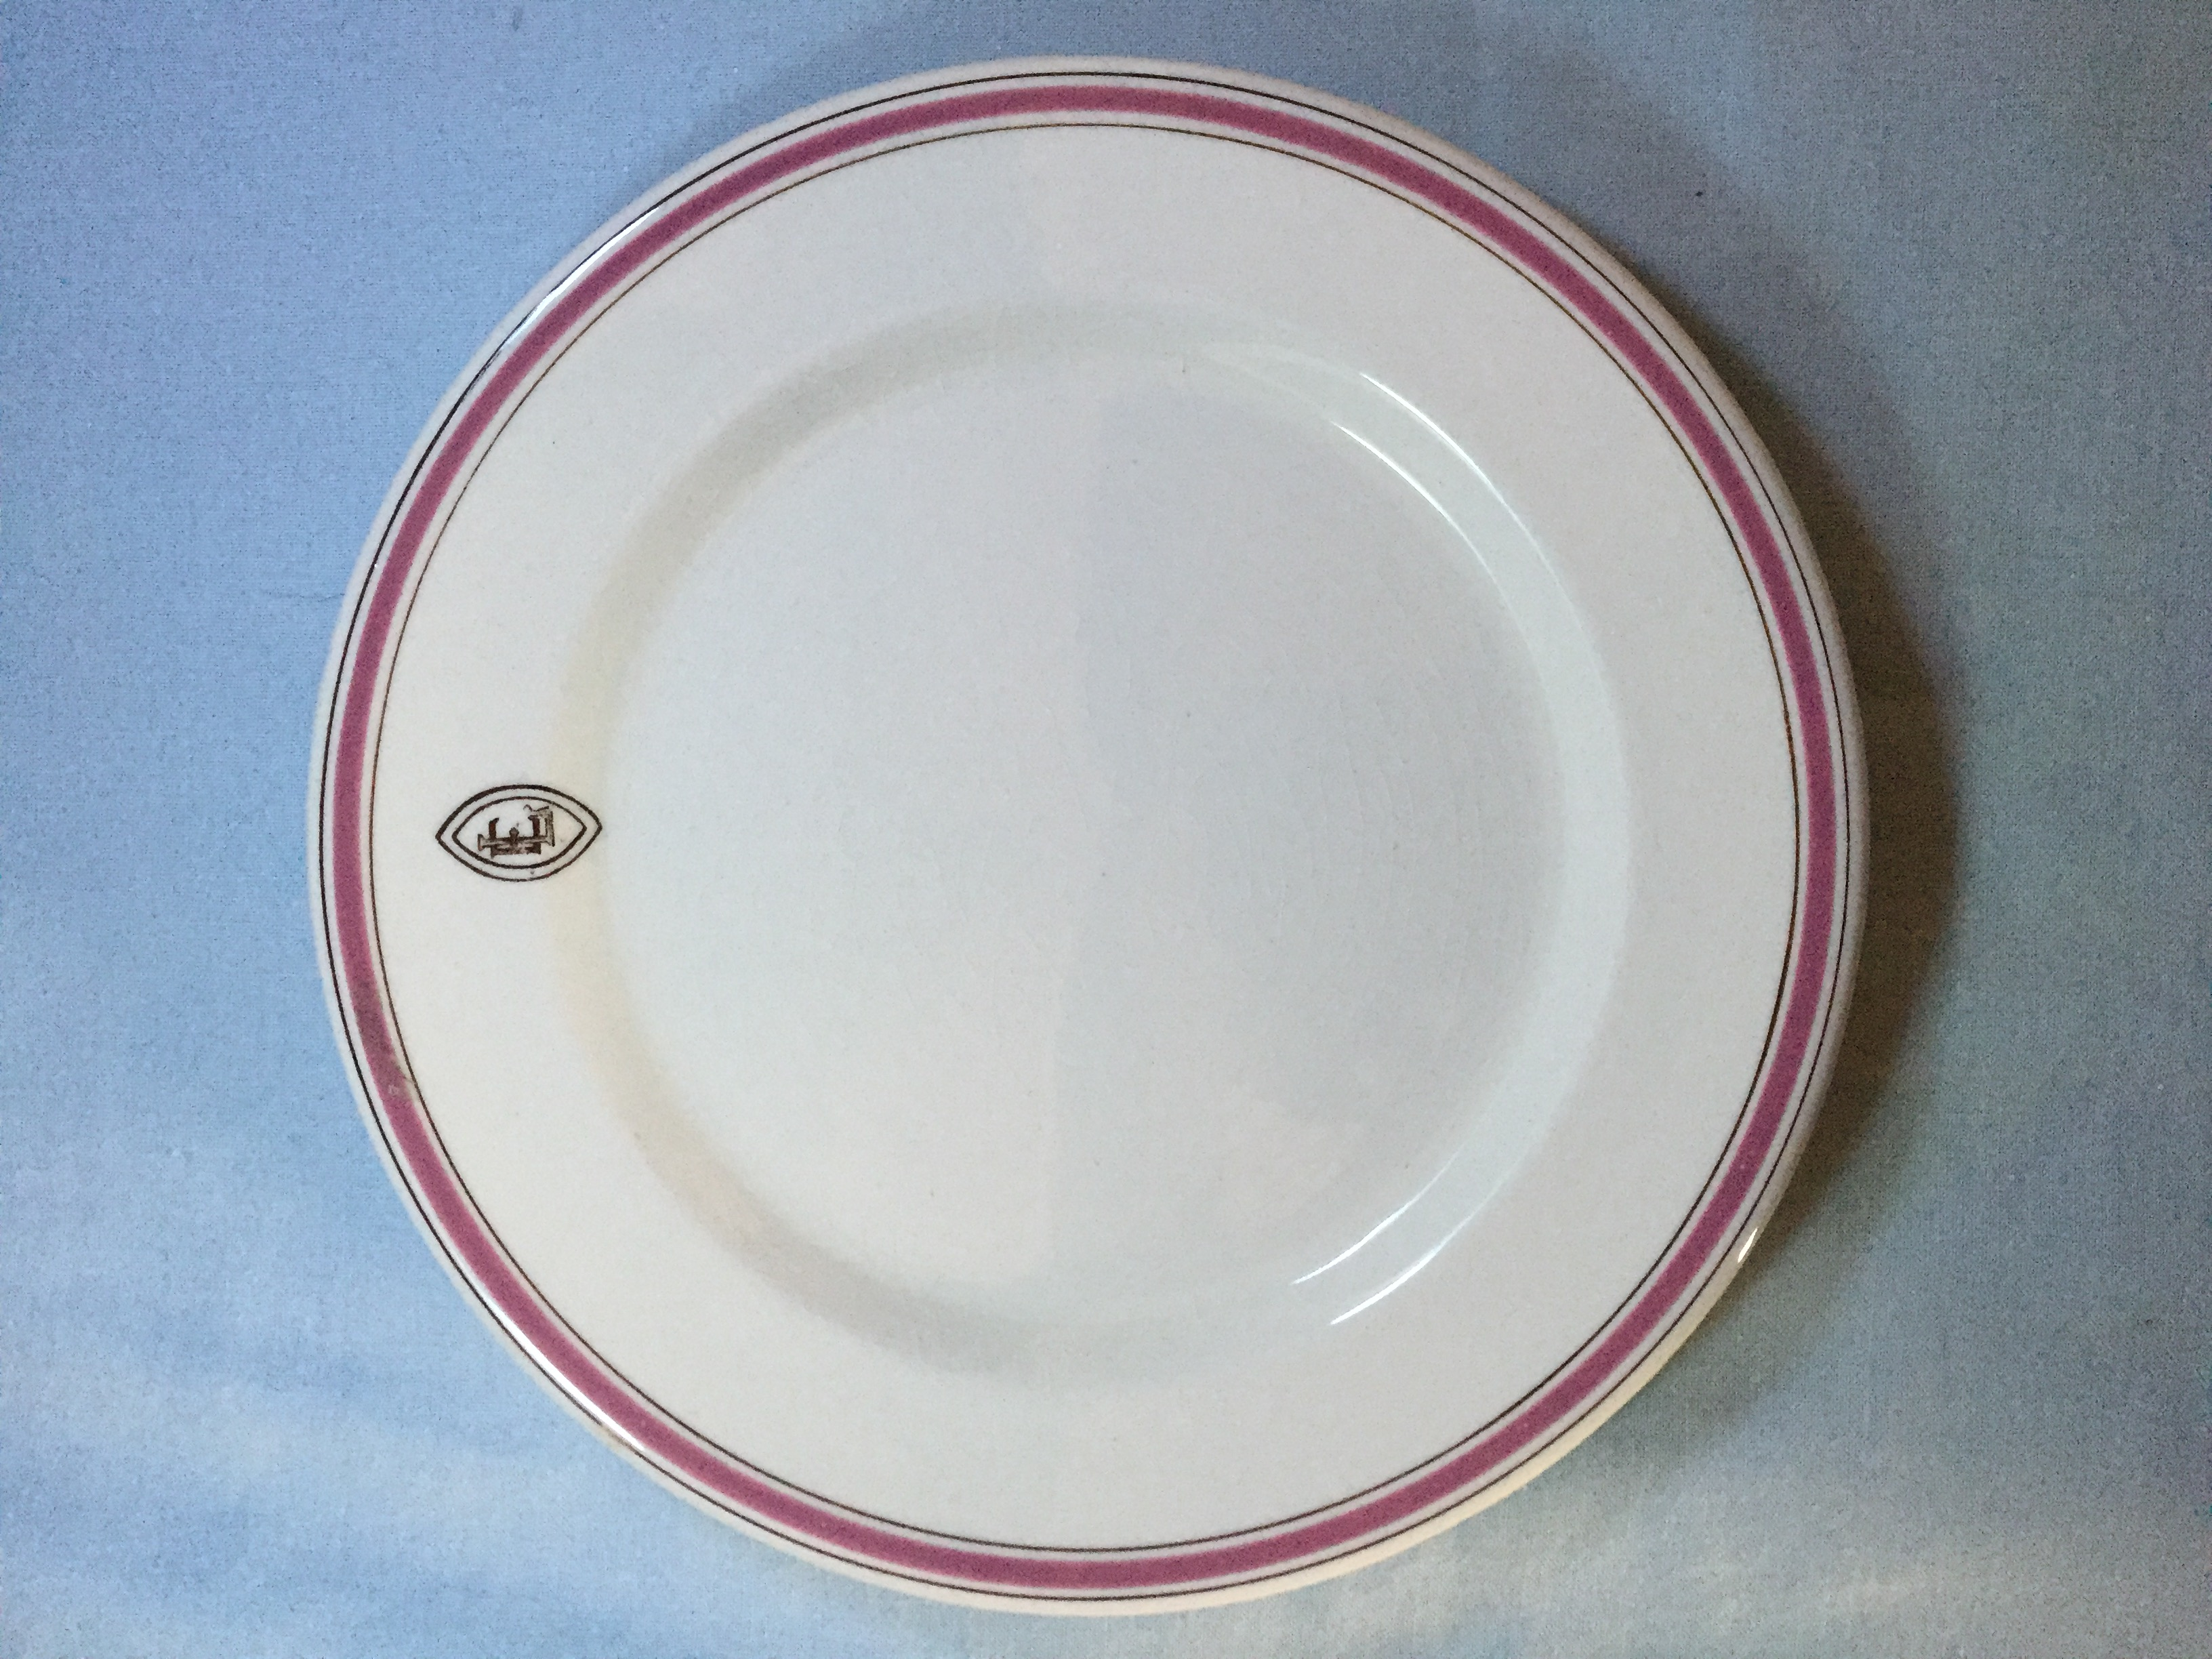 DINING SIDE PLATE FROM THE ELLERMAN LINE